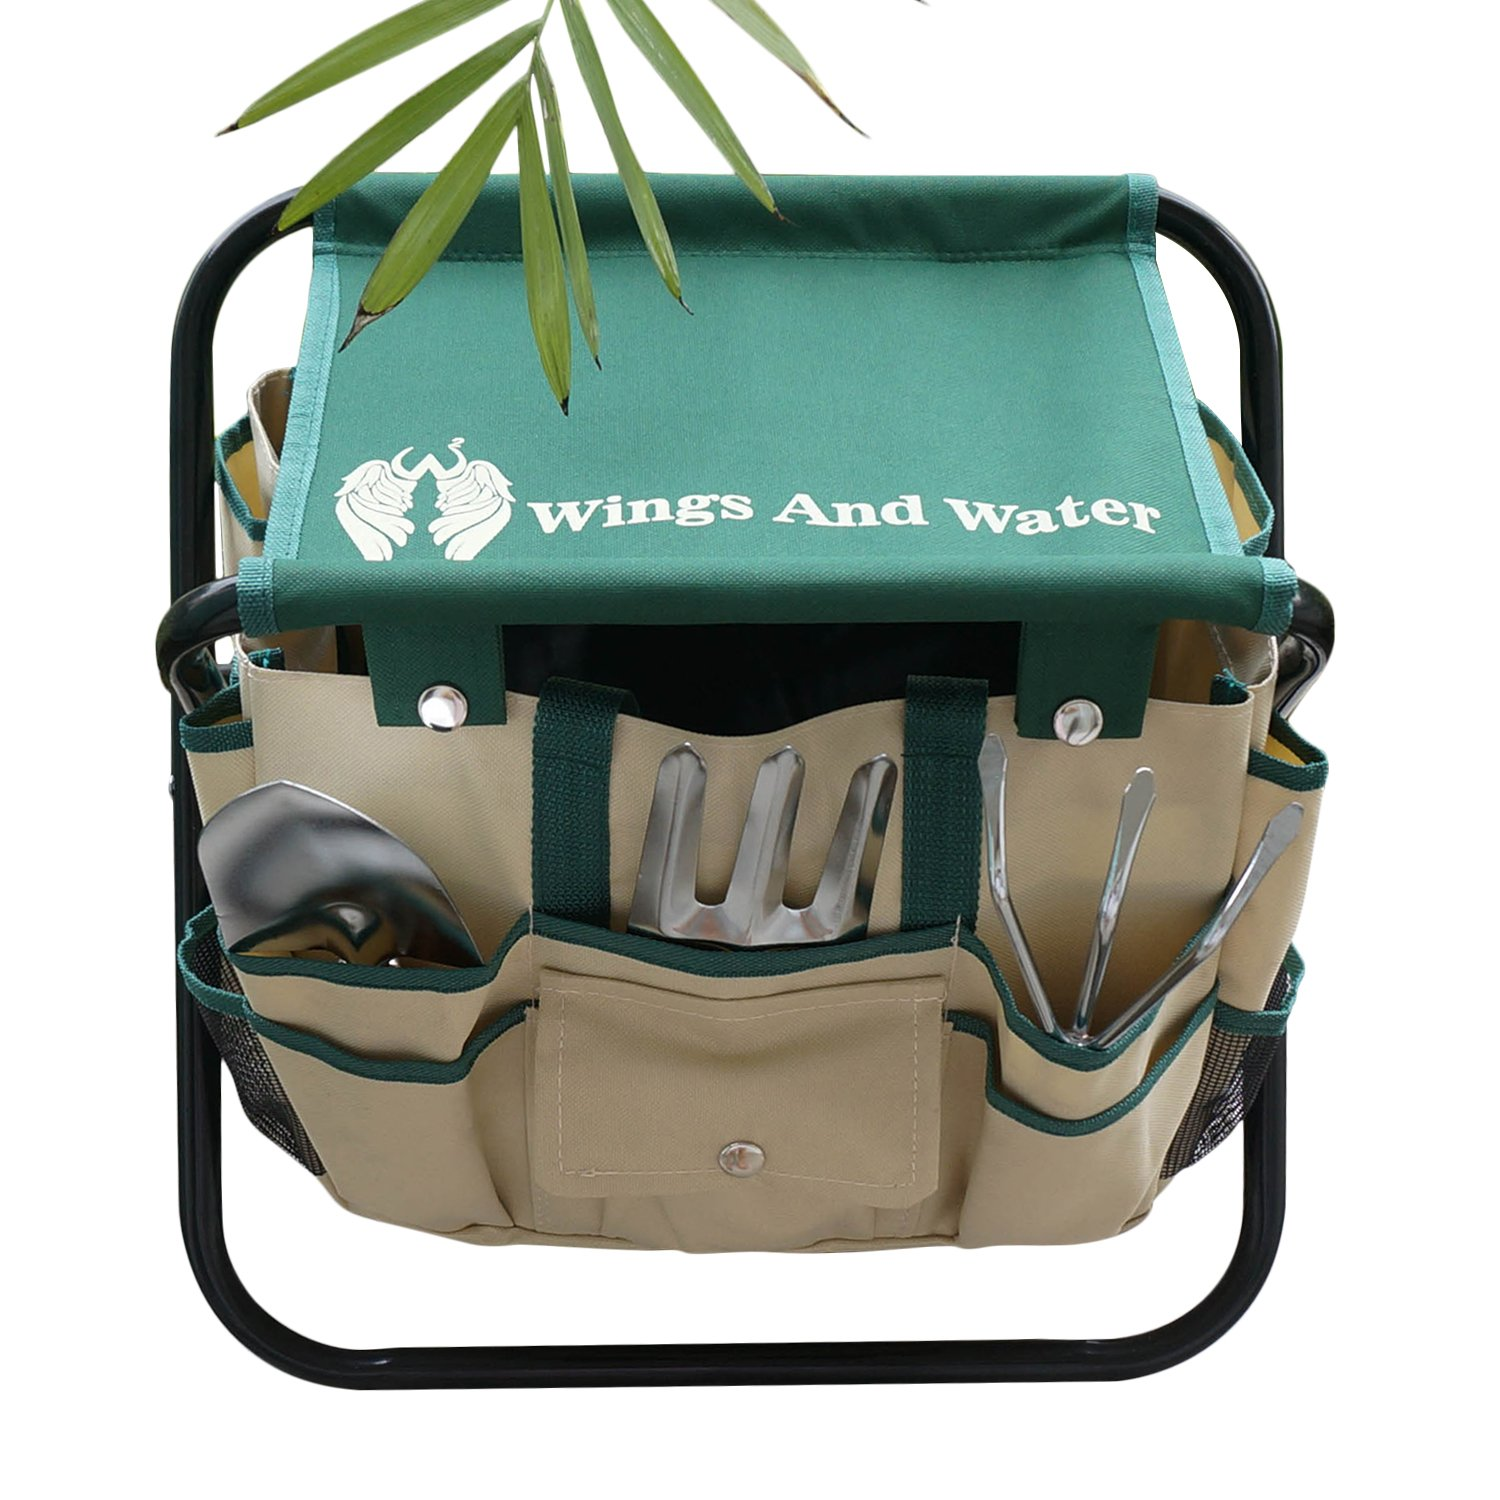 Wings and Water 7 Piece Garden Tool Set, All-In-One Tool Bag, Durable Folding Stool, Stainless Steel by Wings and Water (Image #2)